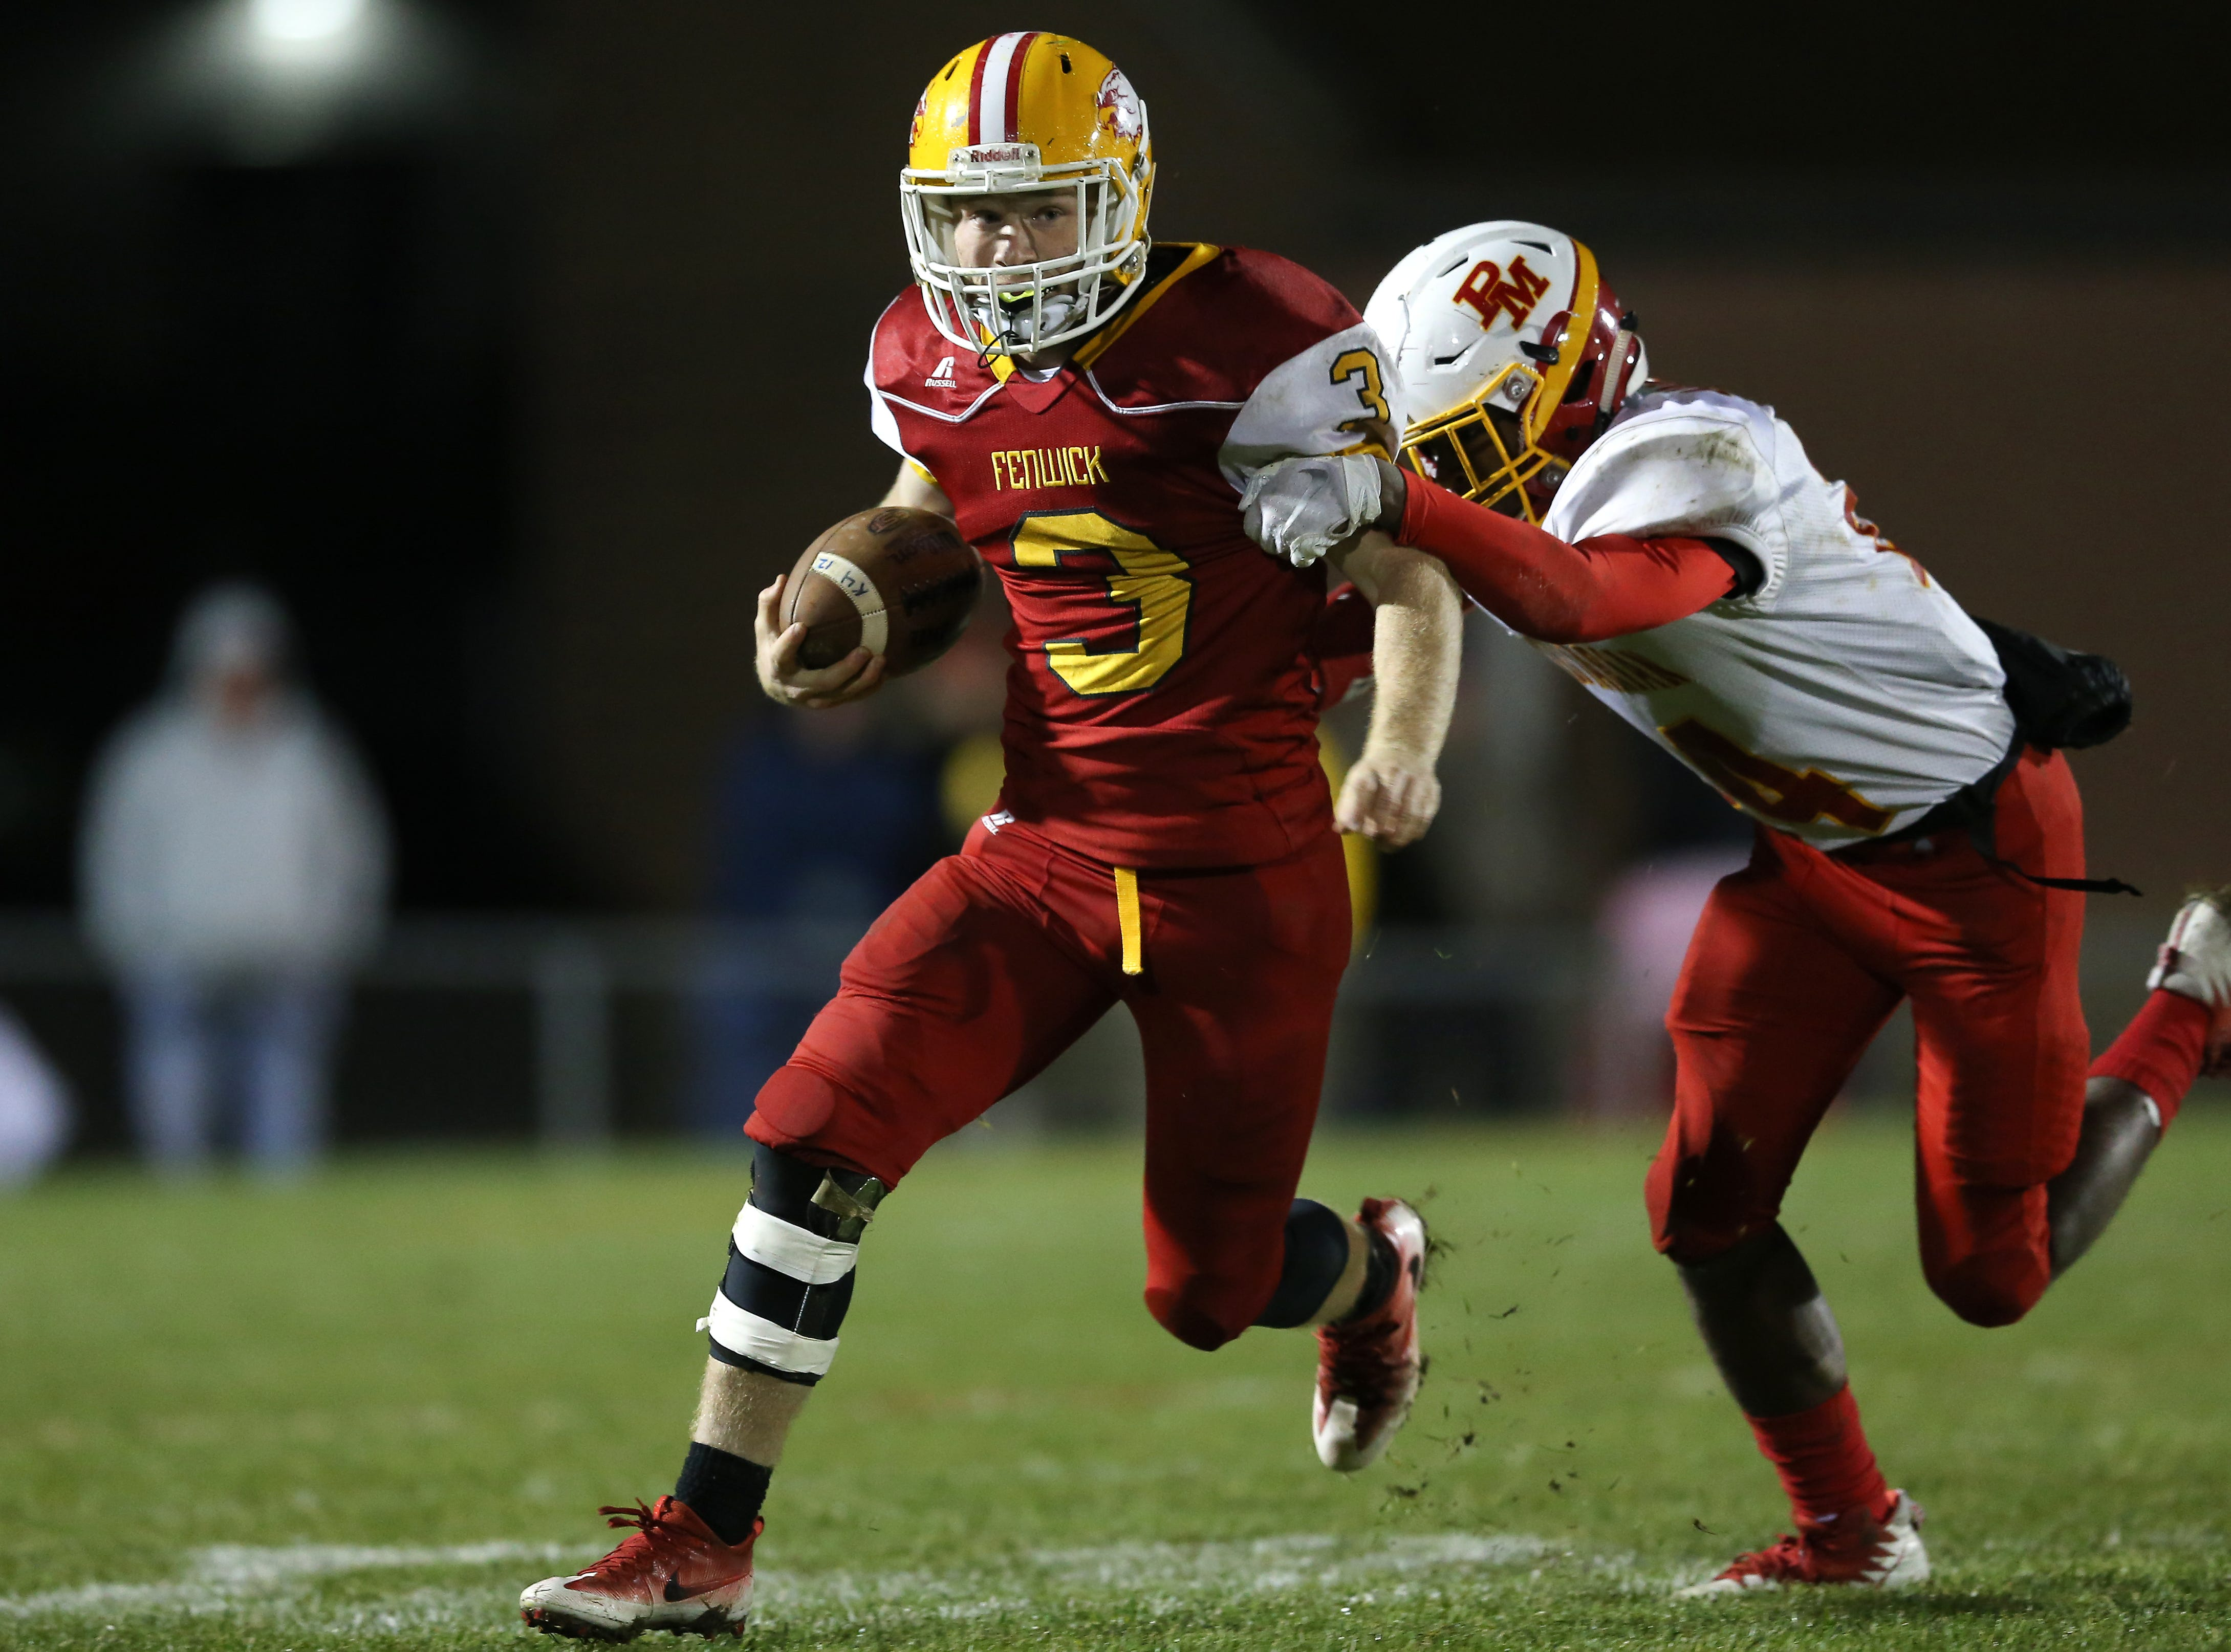 Bishop Fenwick running back Jack Fessler (3) carries the ball in the fourth quarter during a high school football game between Purcell Marian and Bishop Fenwick, Friday, Oct. 12, 2018, at Bishop Fenwick High School in Middletown, Ohio.